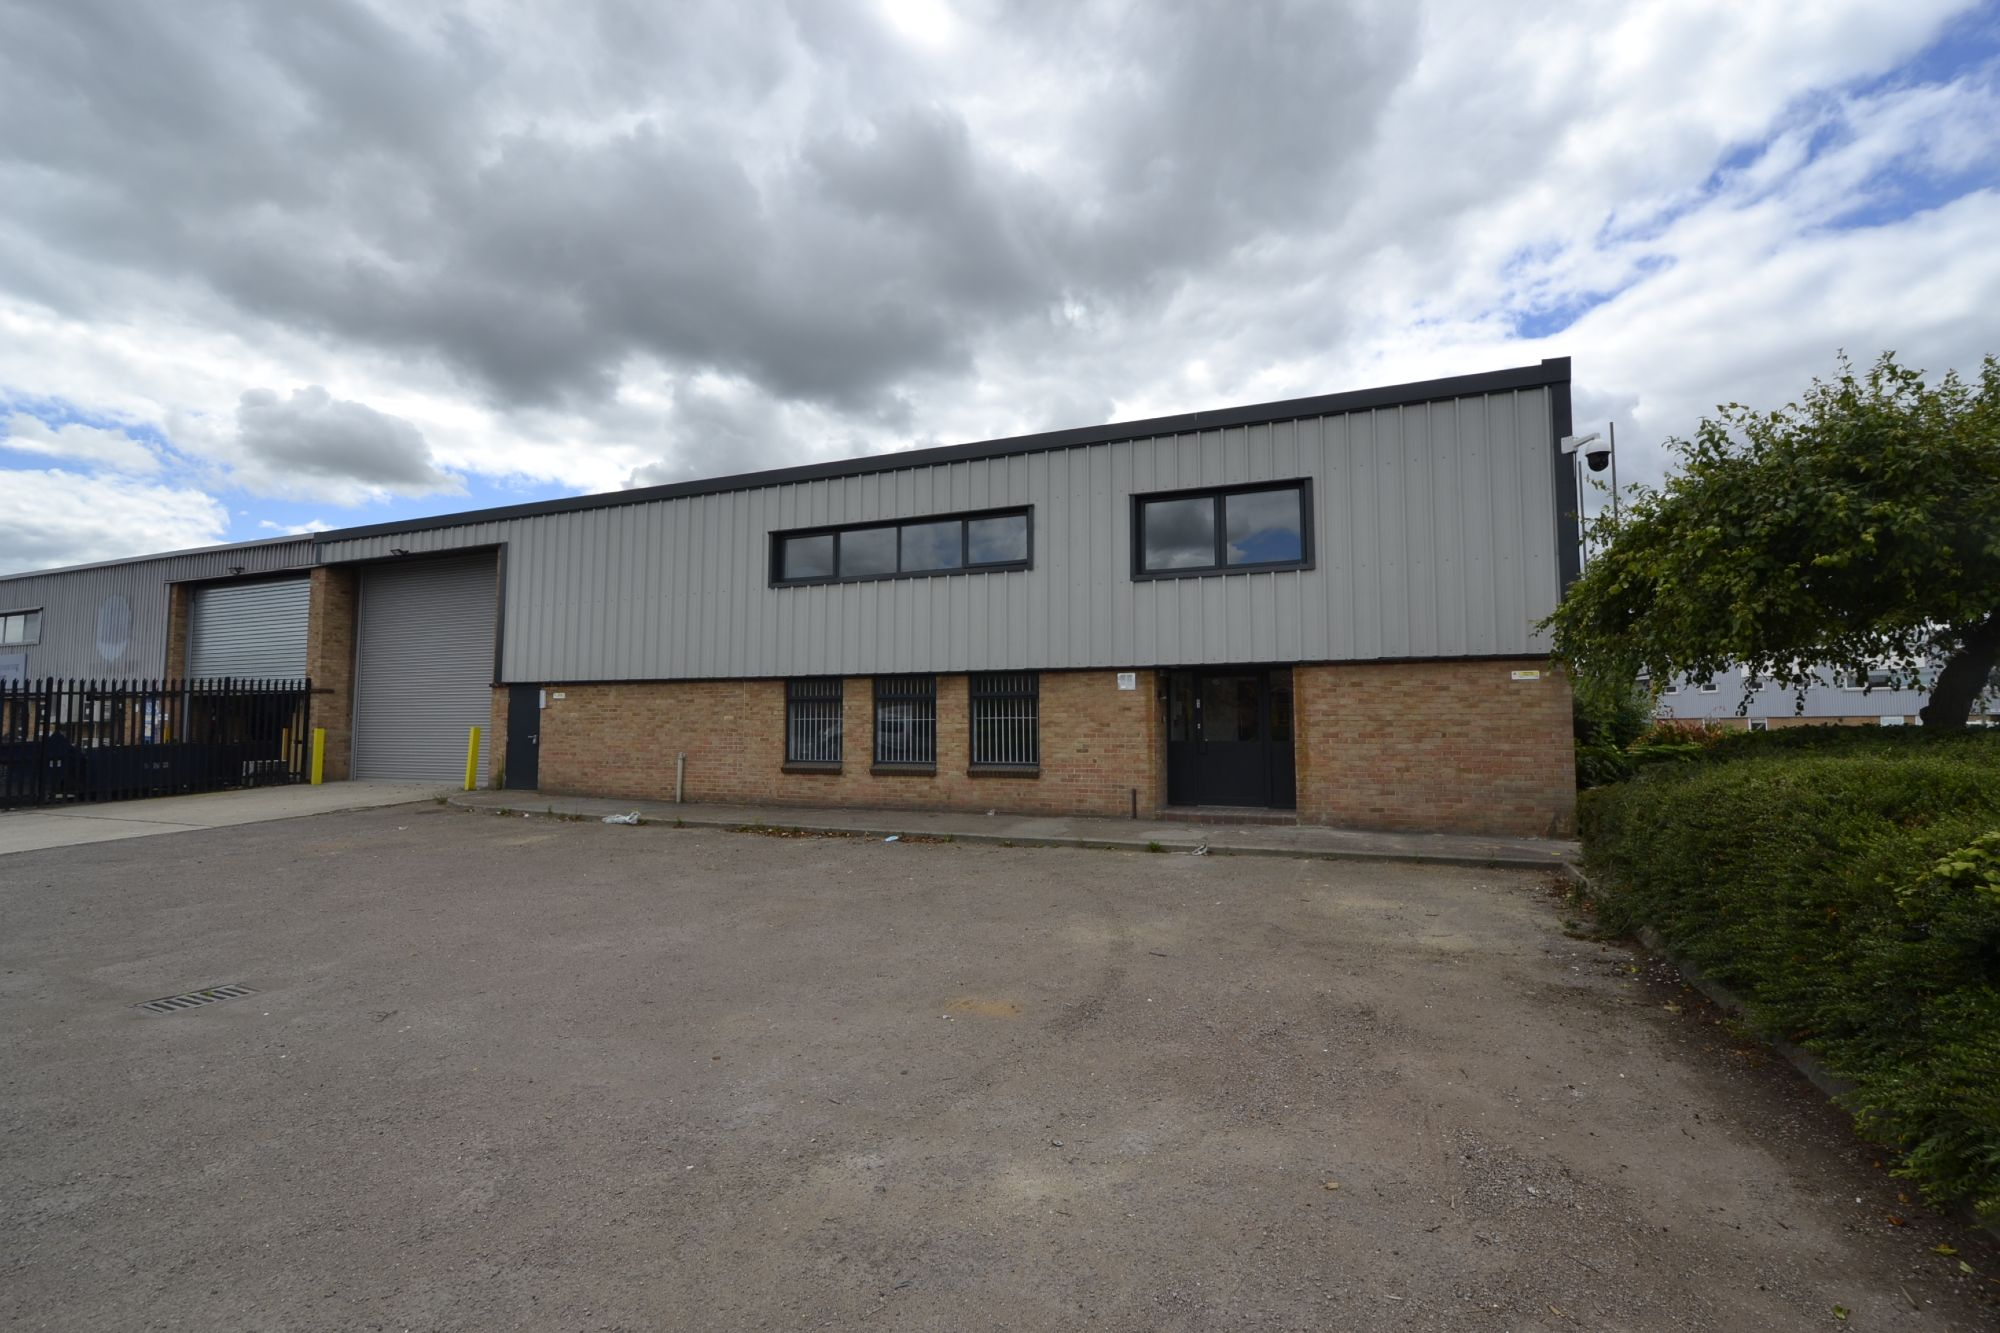 Similar property | 22 Nuffield Centrum - Abingdon